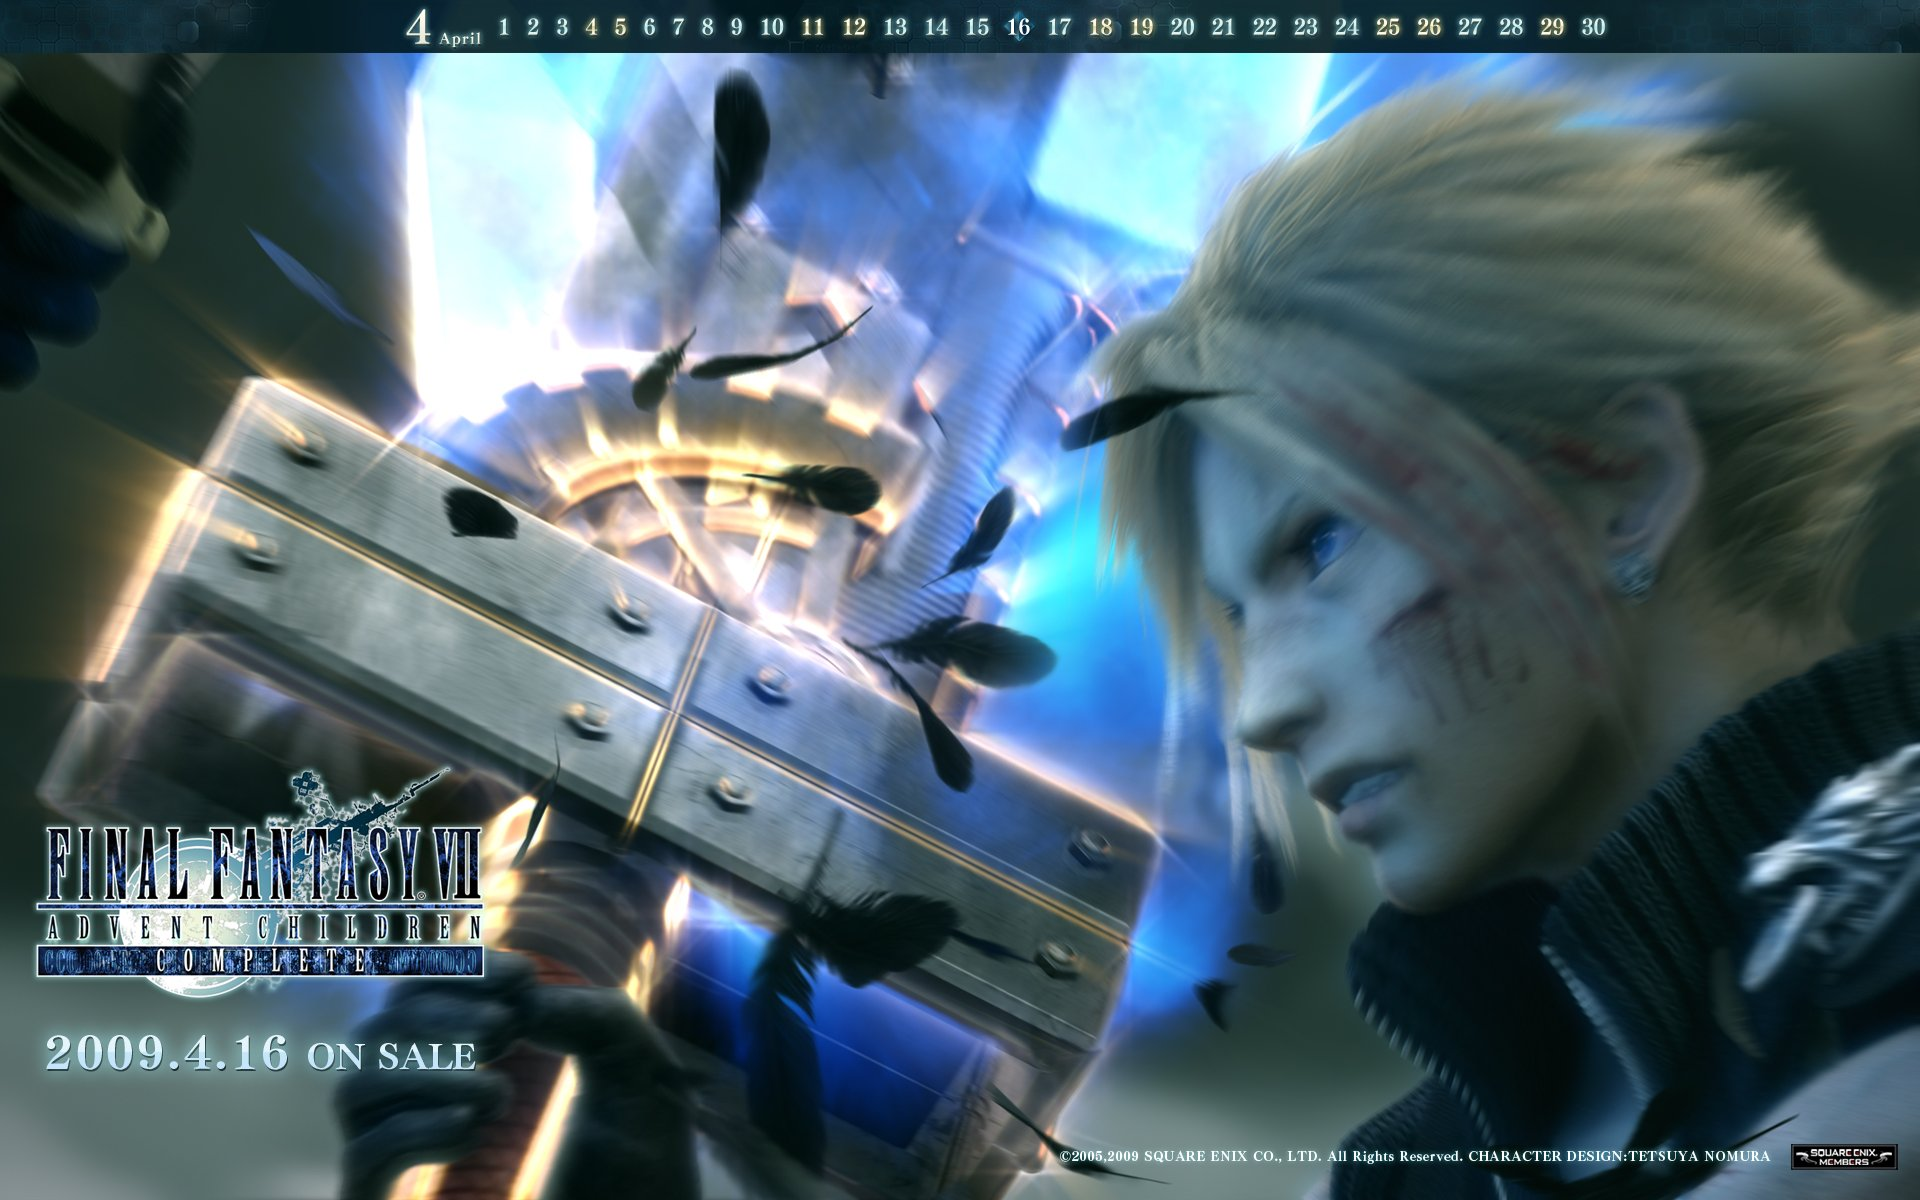 89 final fantasy vii advent children hd wallpapers backgrounds - Final Fantasy Wallpaper Cloud 1920x1200